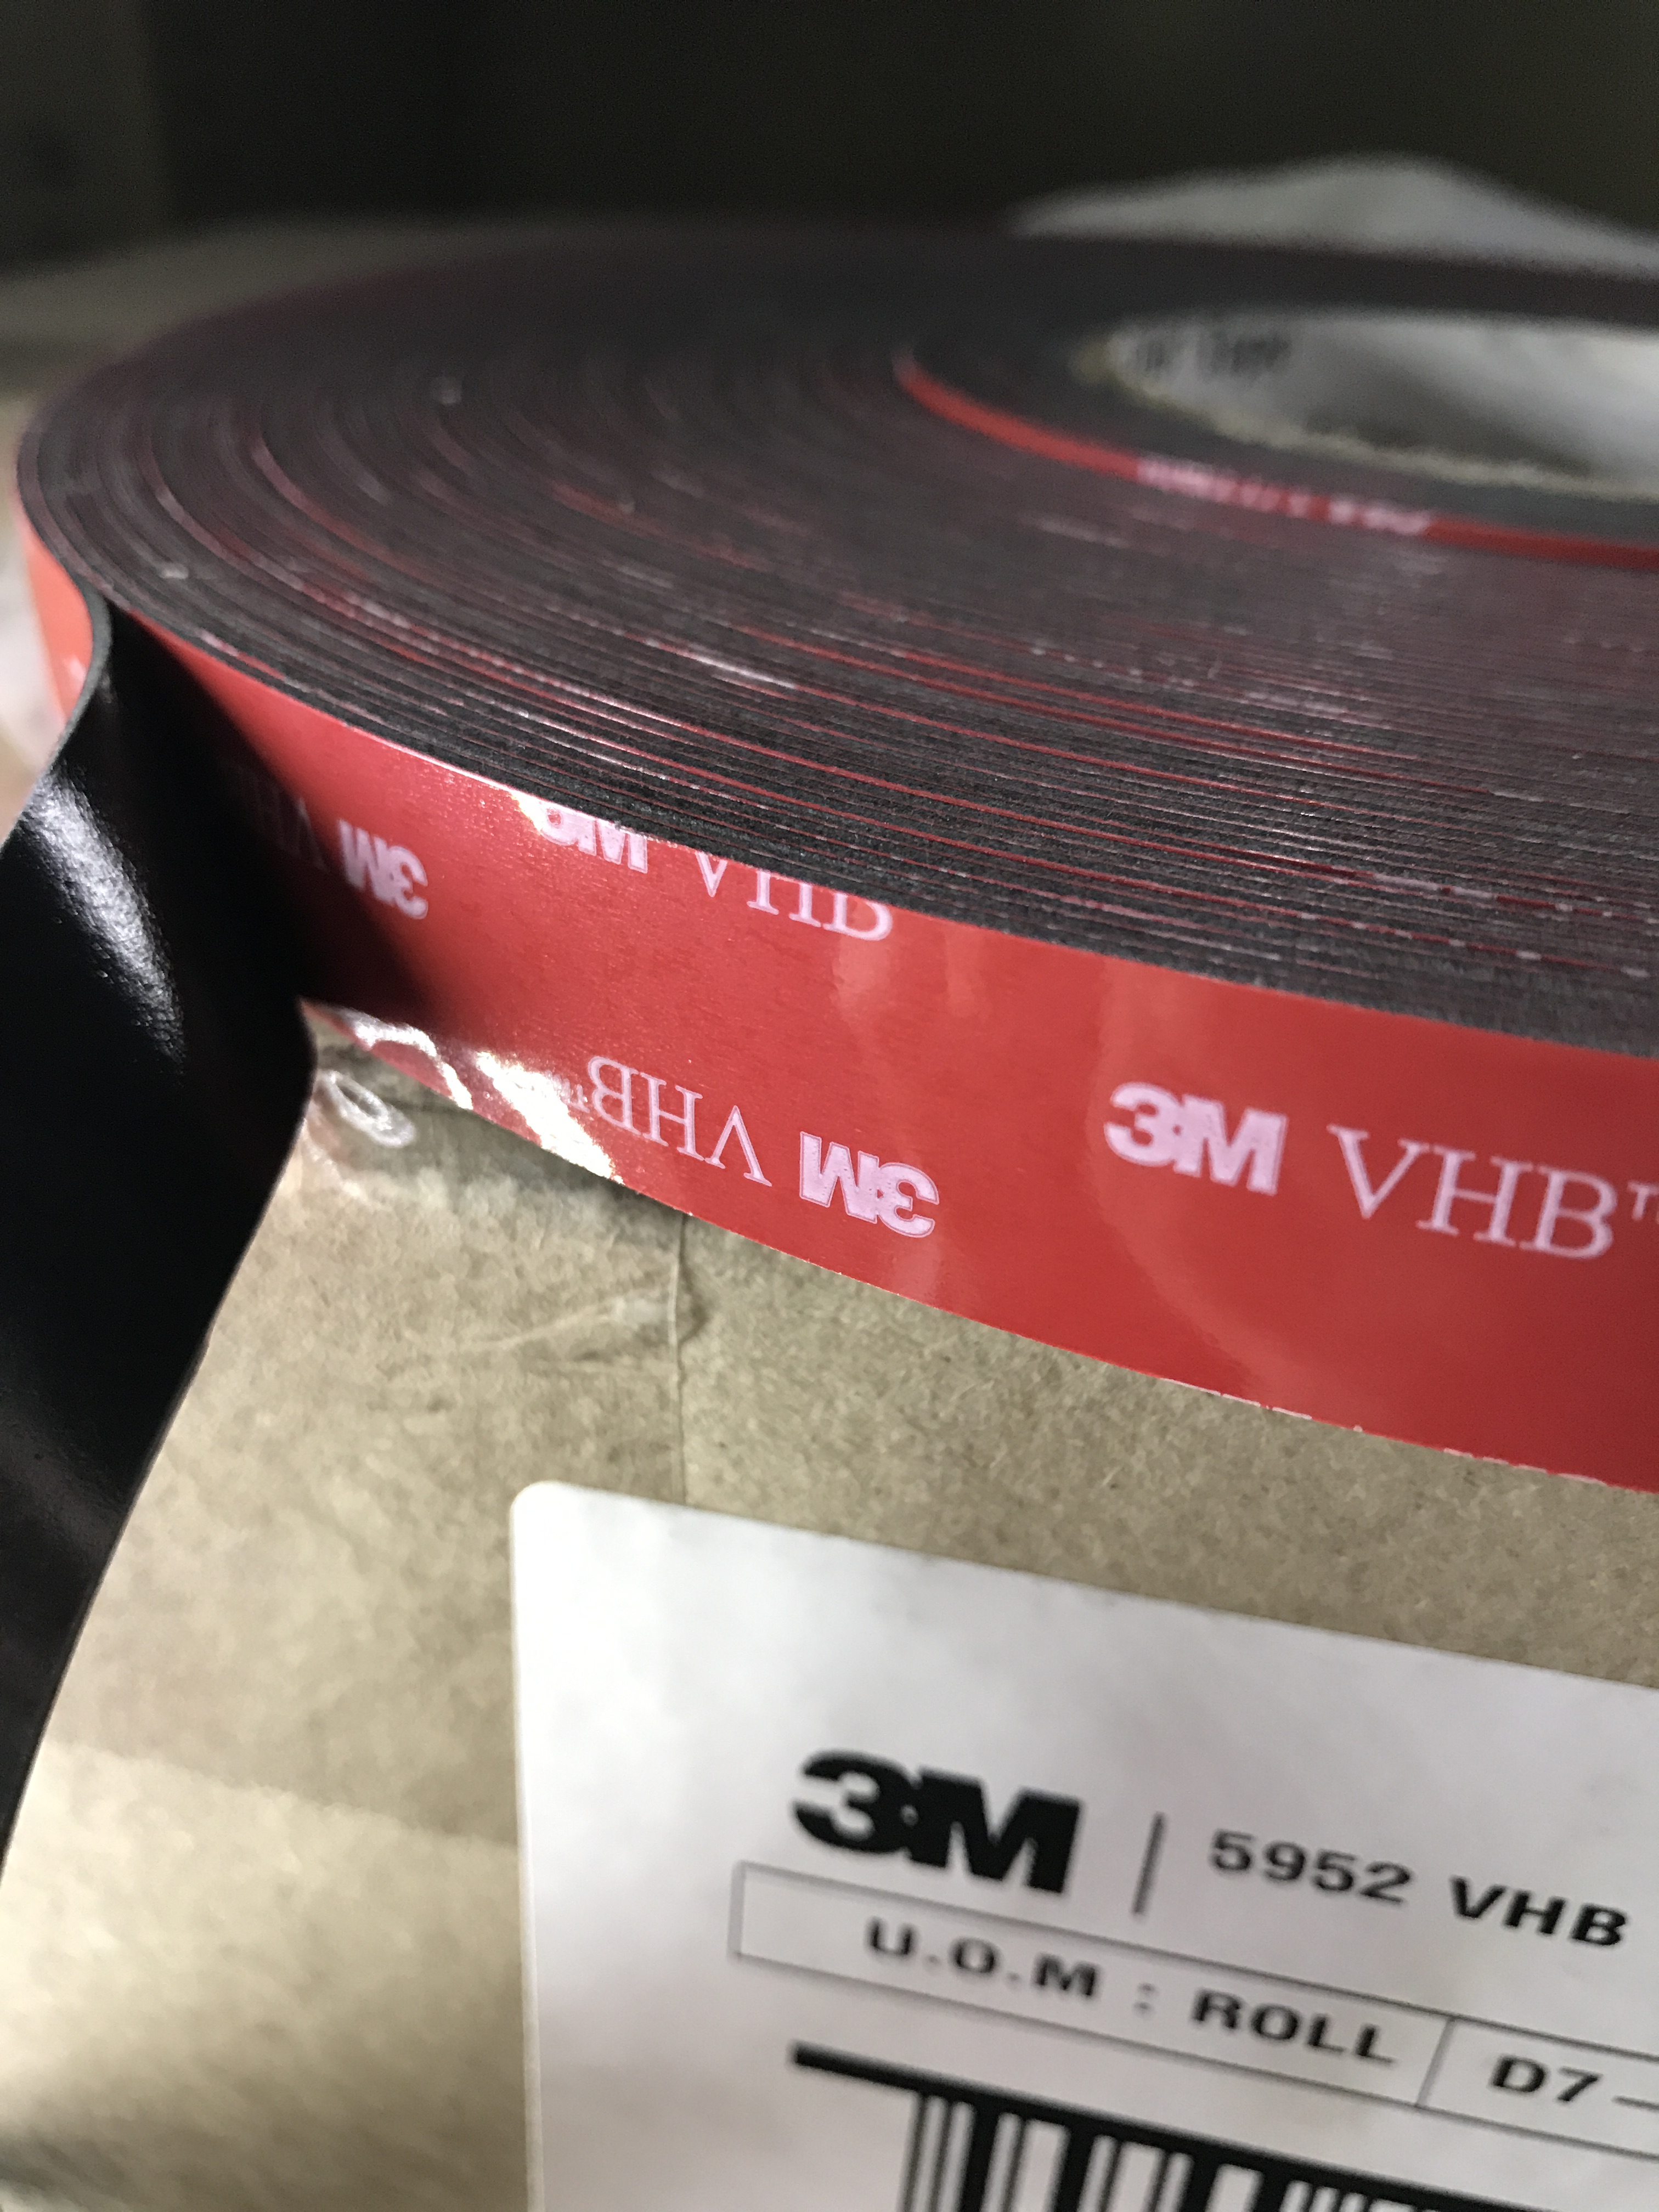 3M - 5952 VHB Tape (Double Sided)